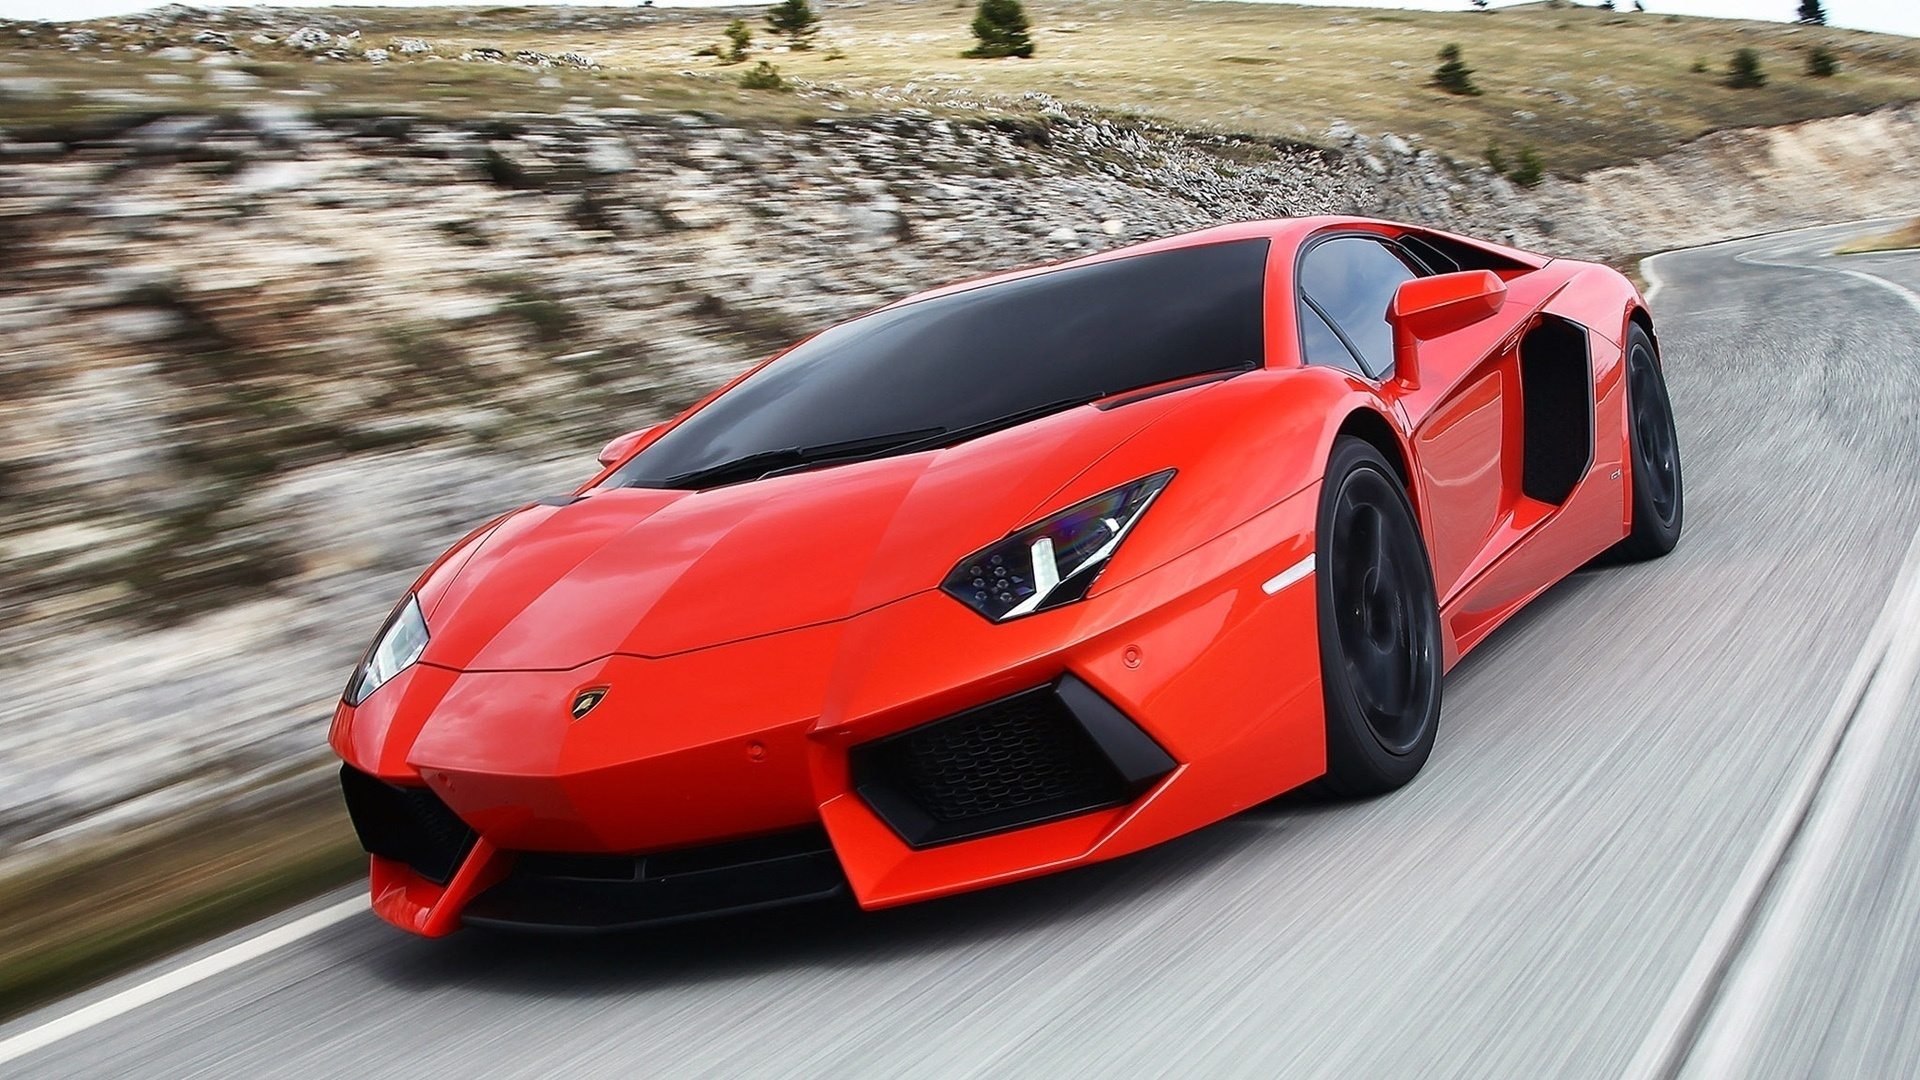 Lamborghini Aventador LP 700 4 Wallpaper Full HD 1080p Cars 1920x1080